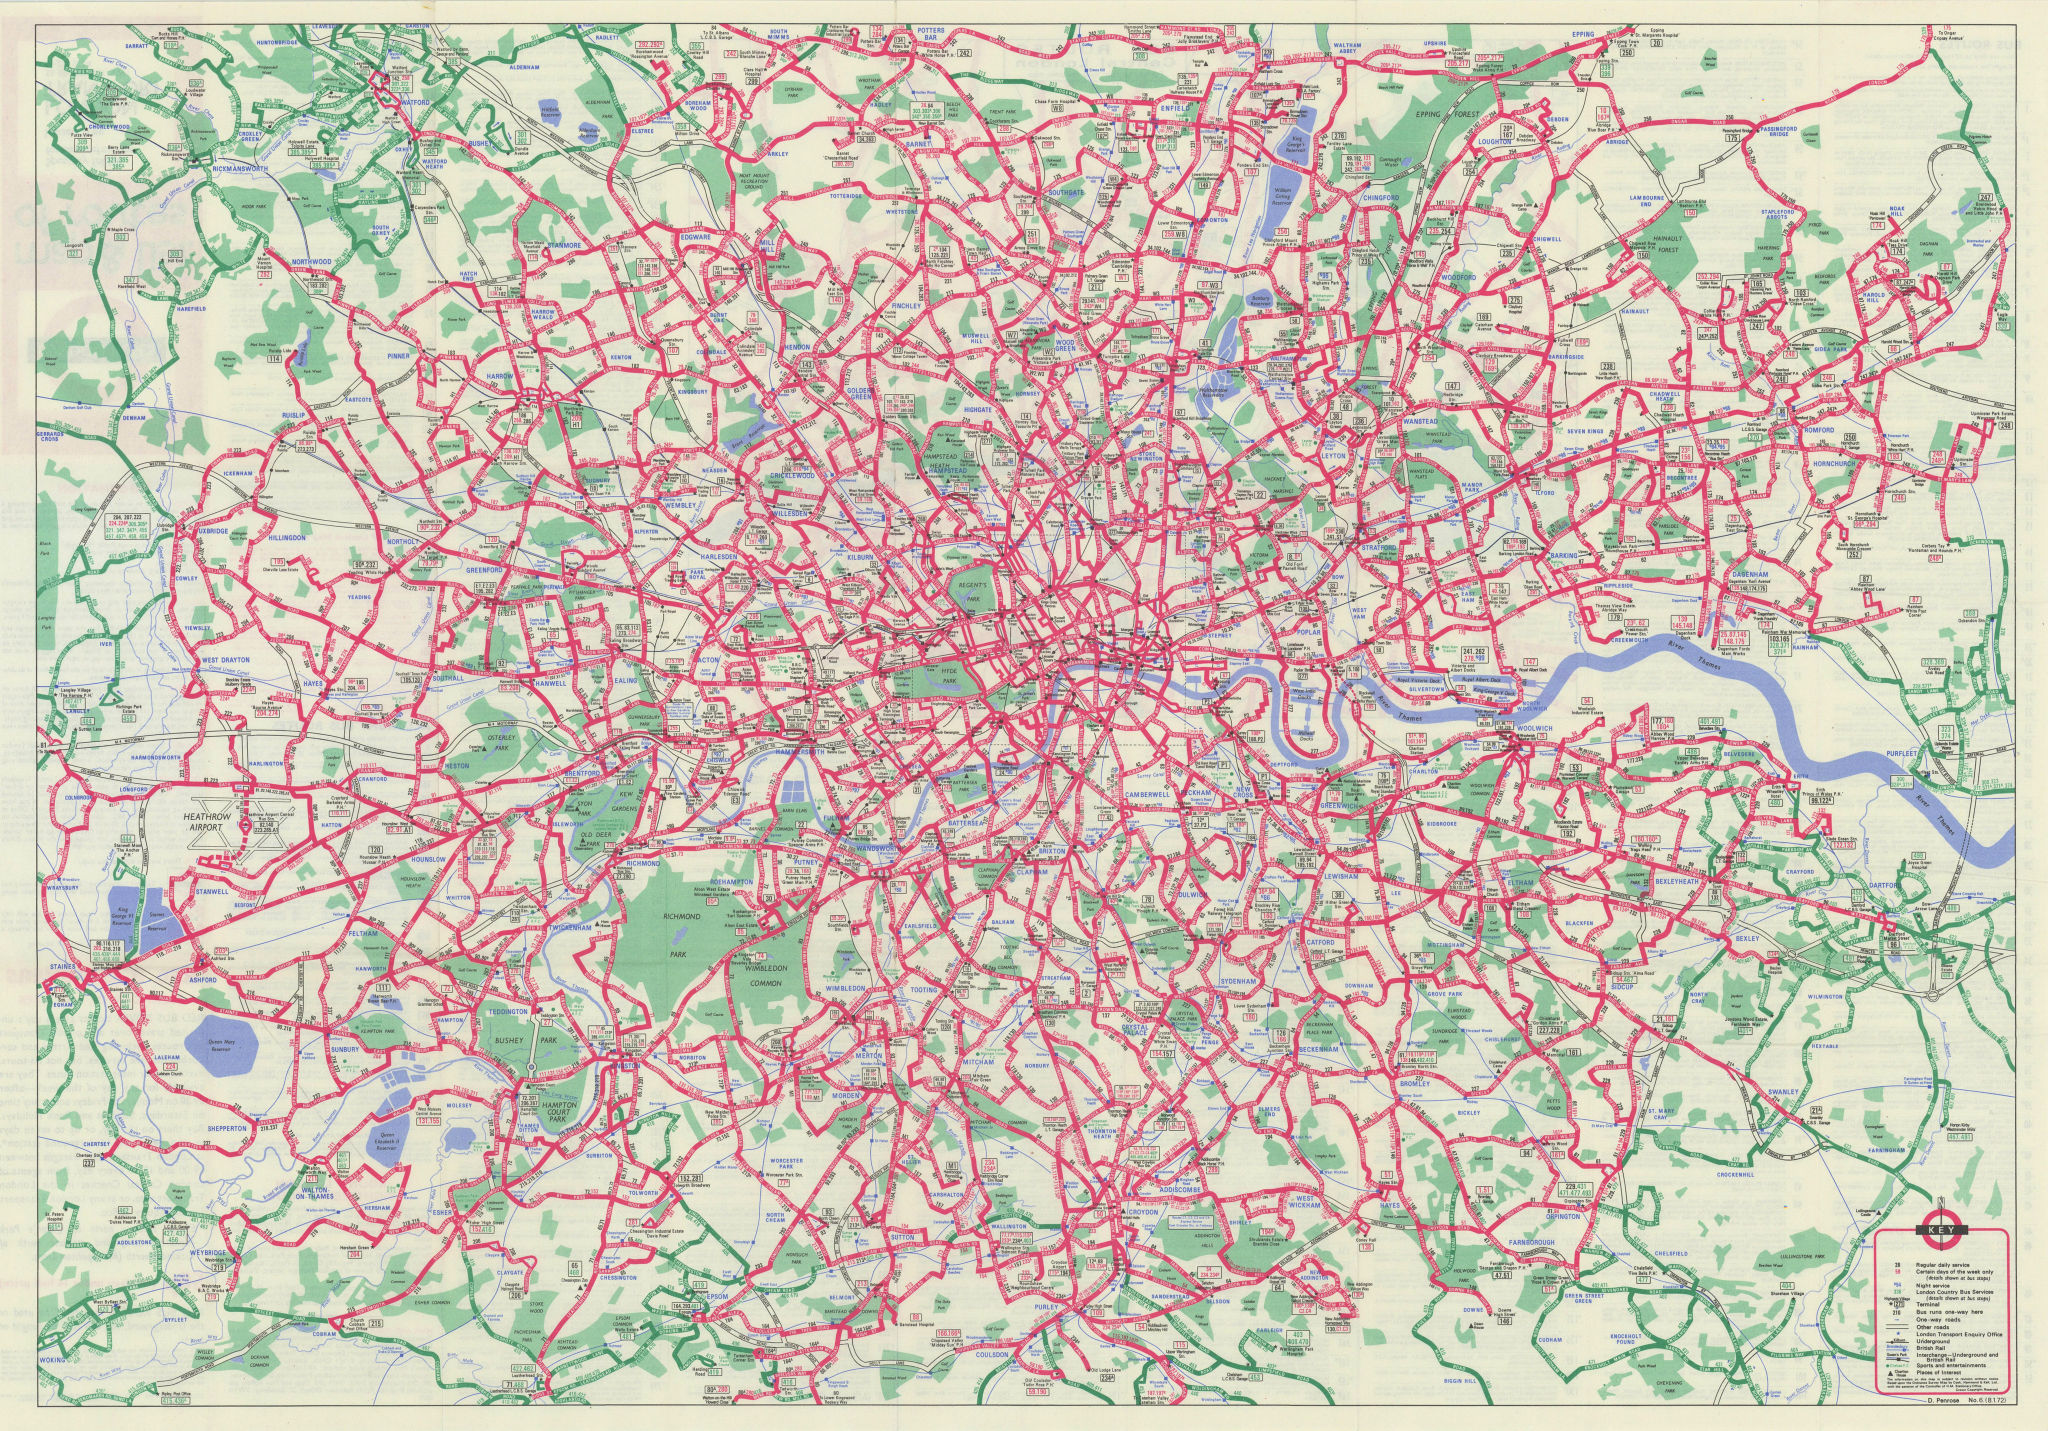 London Transport - London Buses map & list of routes. PENROSE #1 1972 old